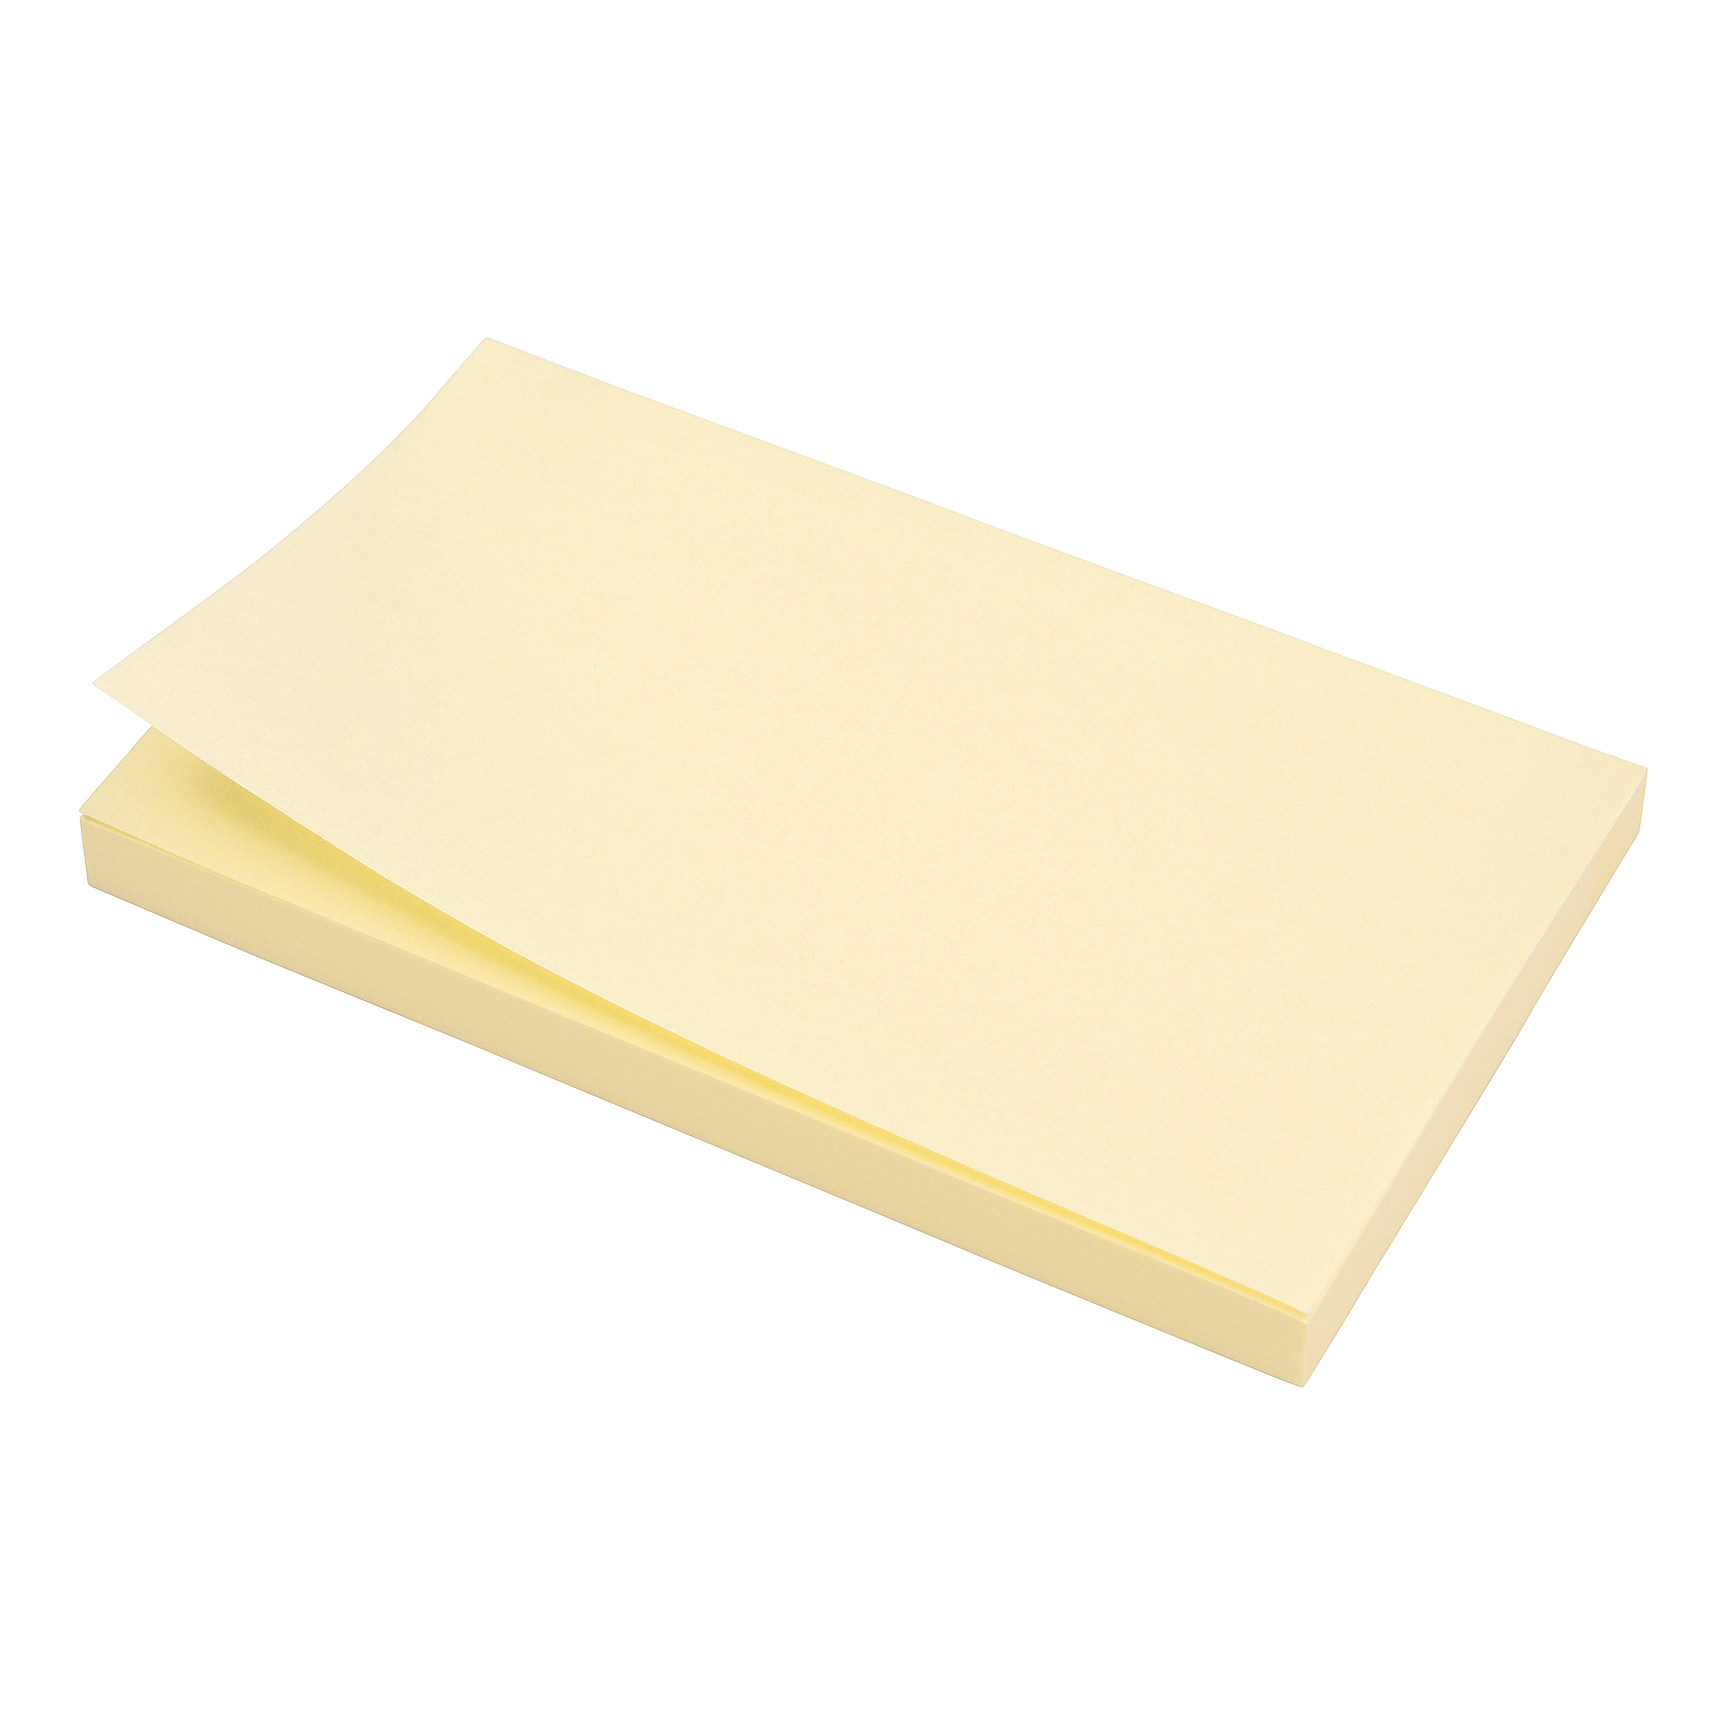 Yellow 5 Star Office Extra Sticky Re-Move Notes Pad of 90 Sheets 76x127mm Yellow [Pack 12]